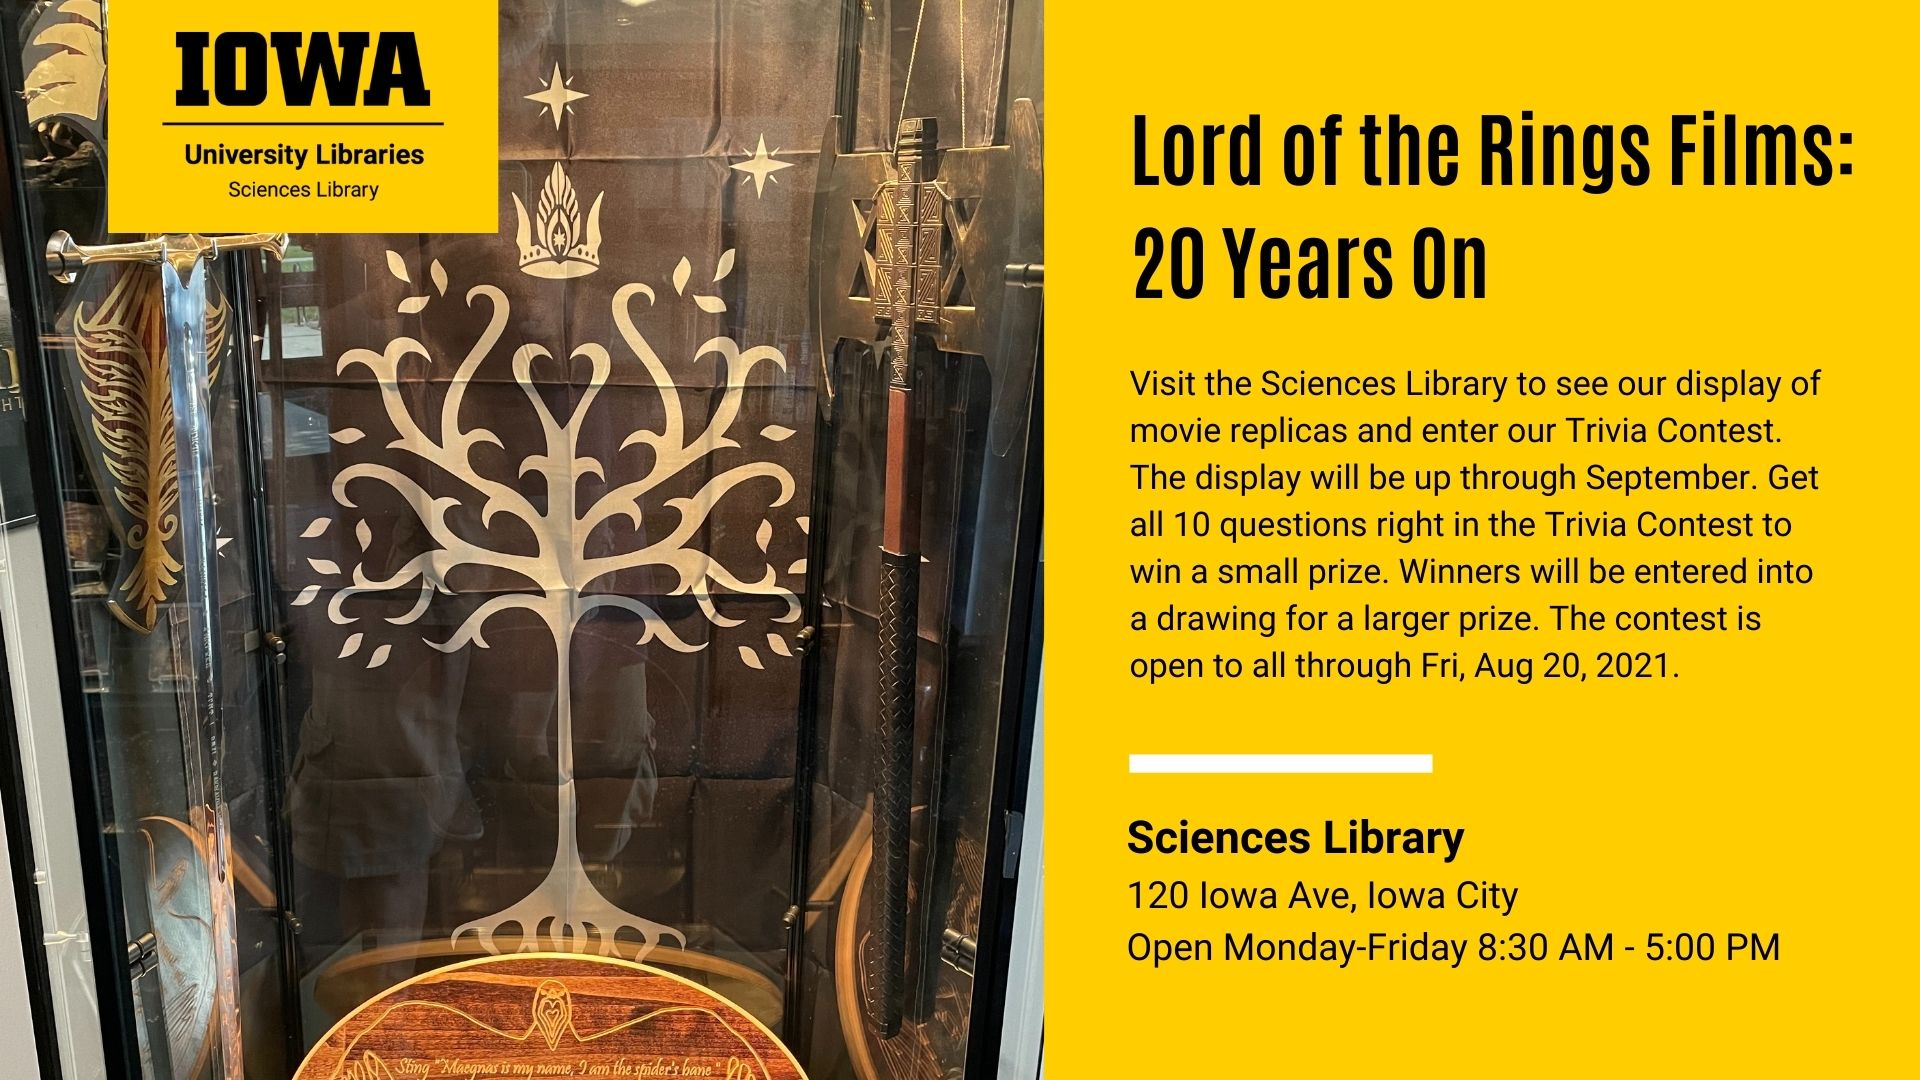 Visit the Sciences Library to see our display of movie replicas and enter our Trivia Contest. The display will be up through September. Get all 10 questions right in the Trivia Contest to win a small prize. Winners will be entered into a drawing for a lar